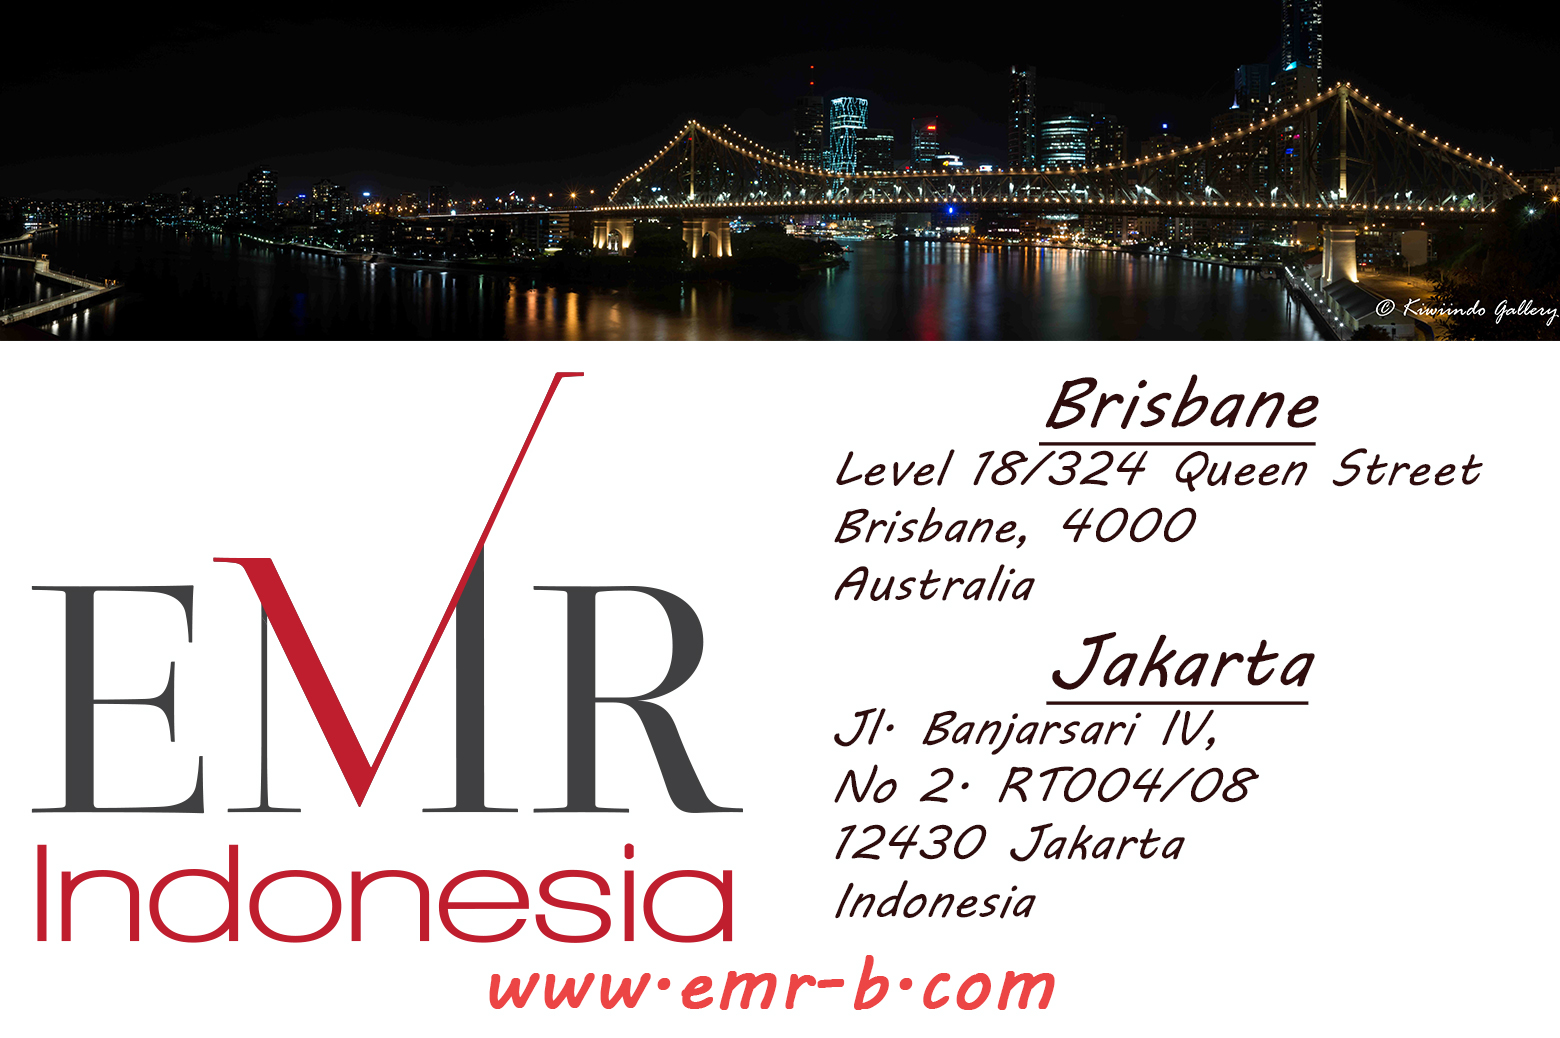 EMR Indonesia Address